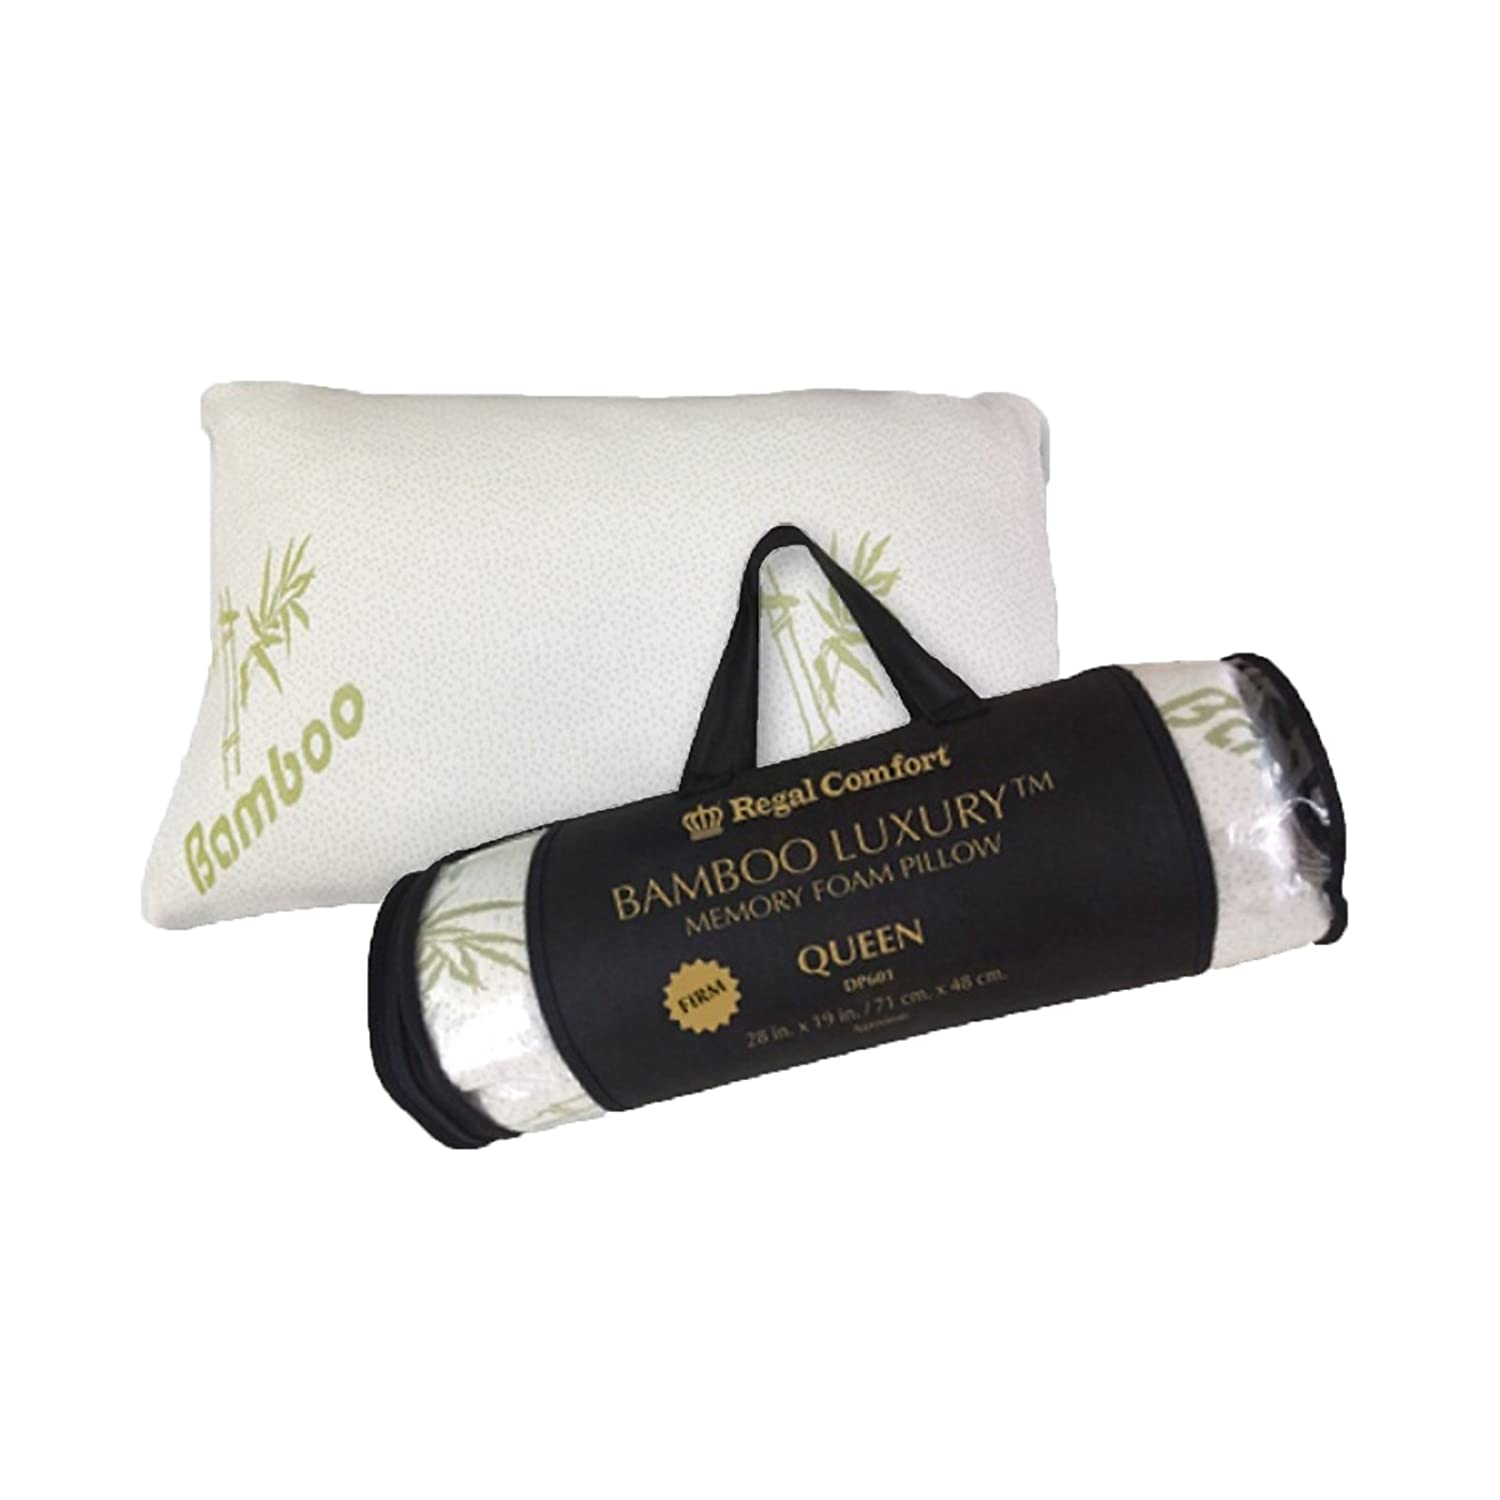 amazoncom regal comfort bamboo firm memory foam bed pillow queen home u0026 kitchen